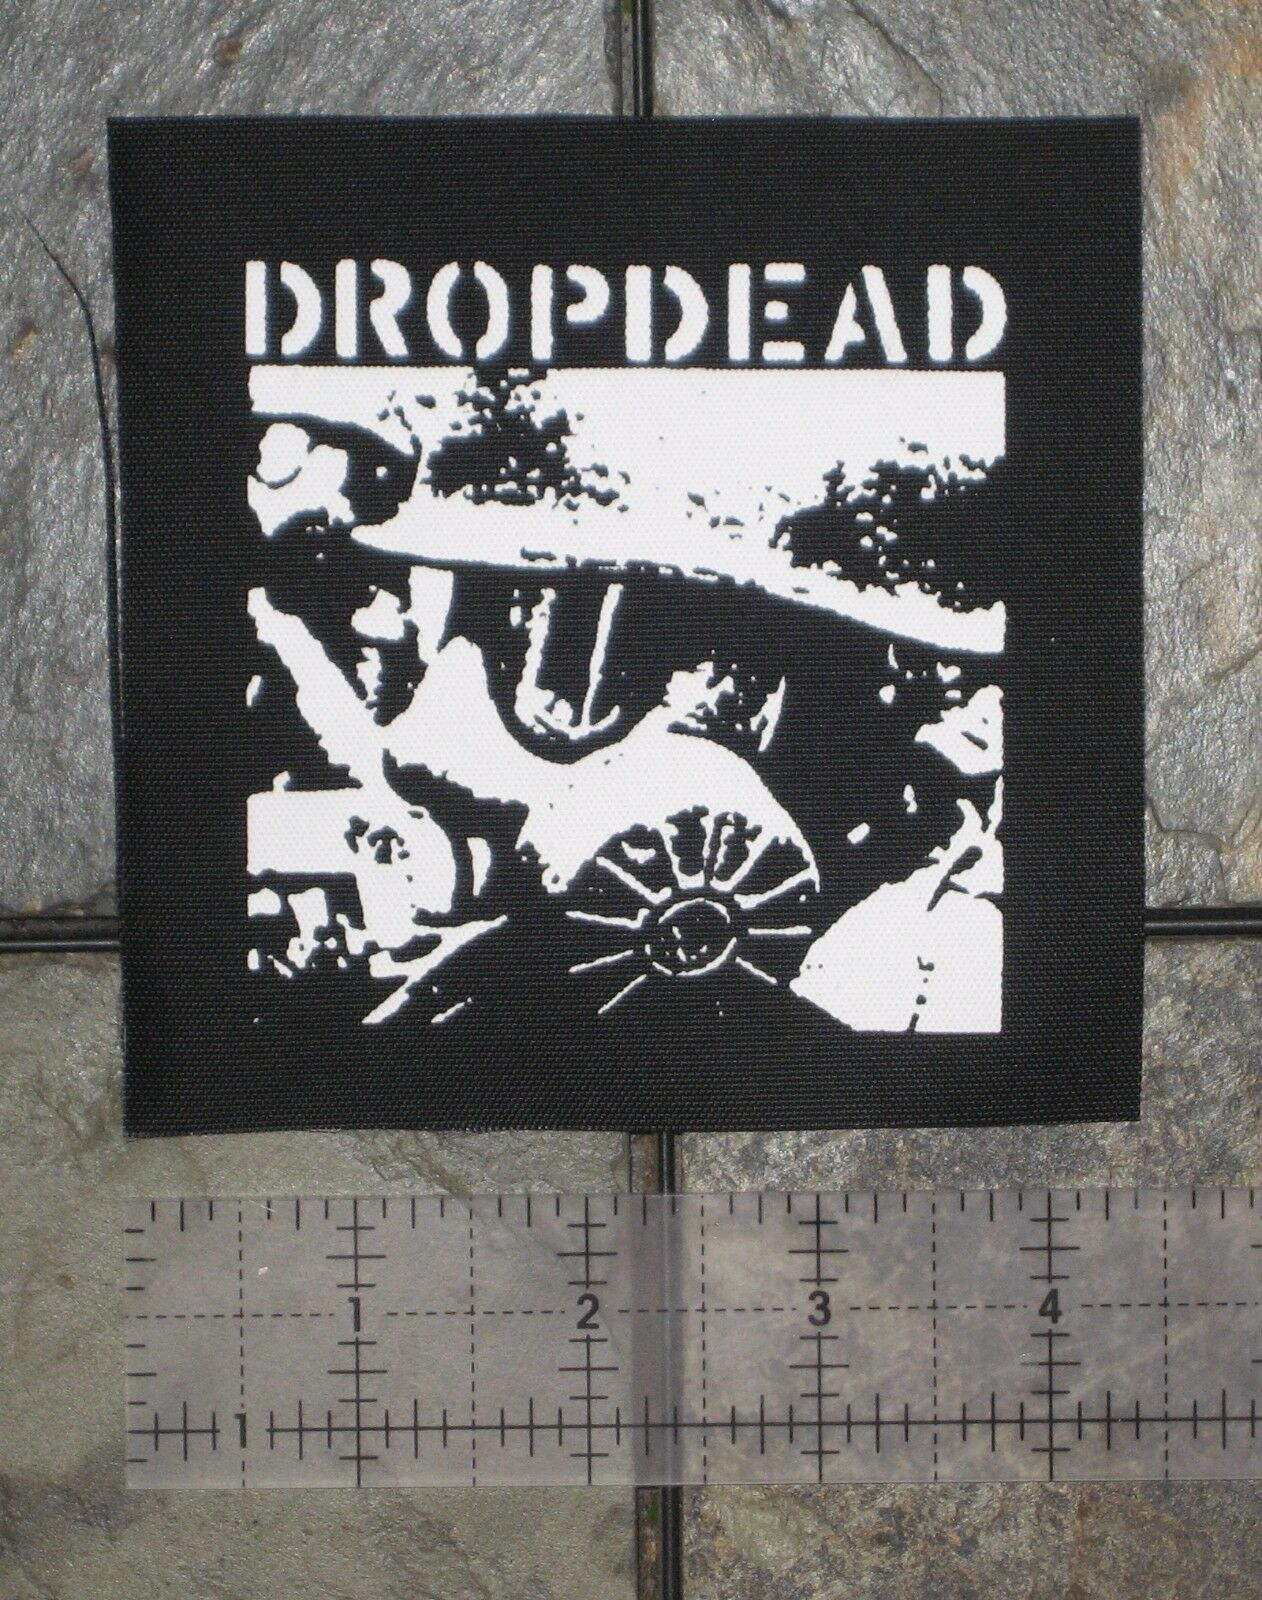 DROPDEAD - DIY Crust Punk Patch Unholy Grave Despise you D-beat Hellnation Nasum